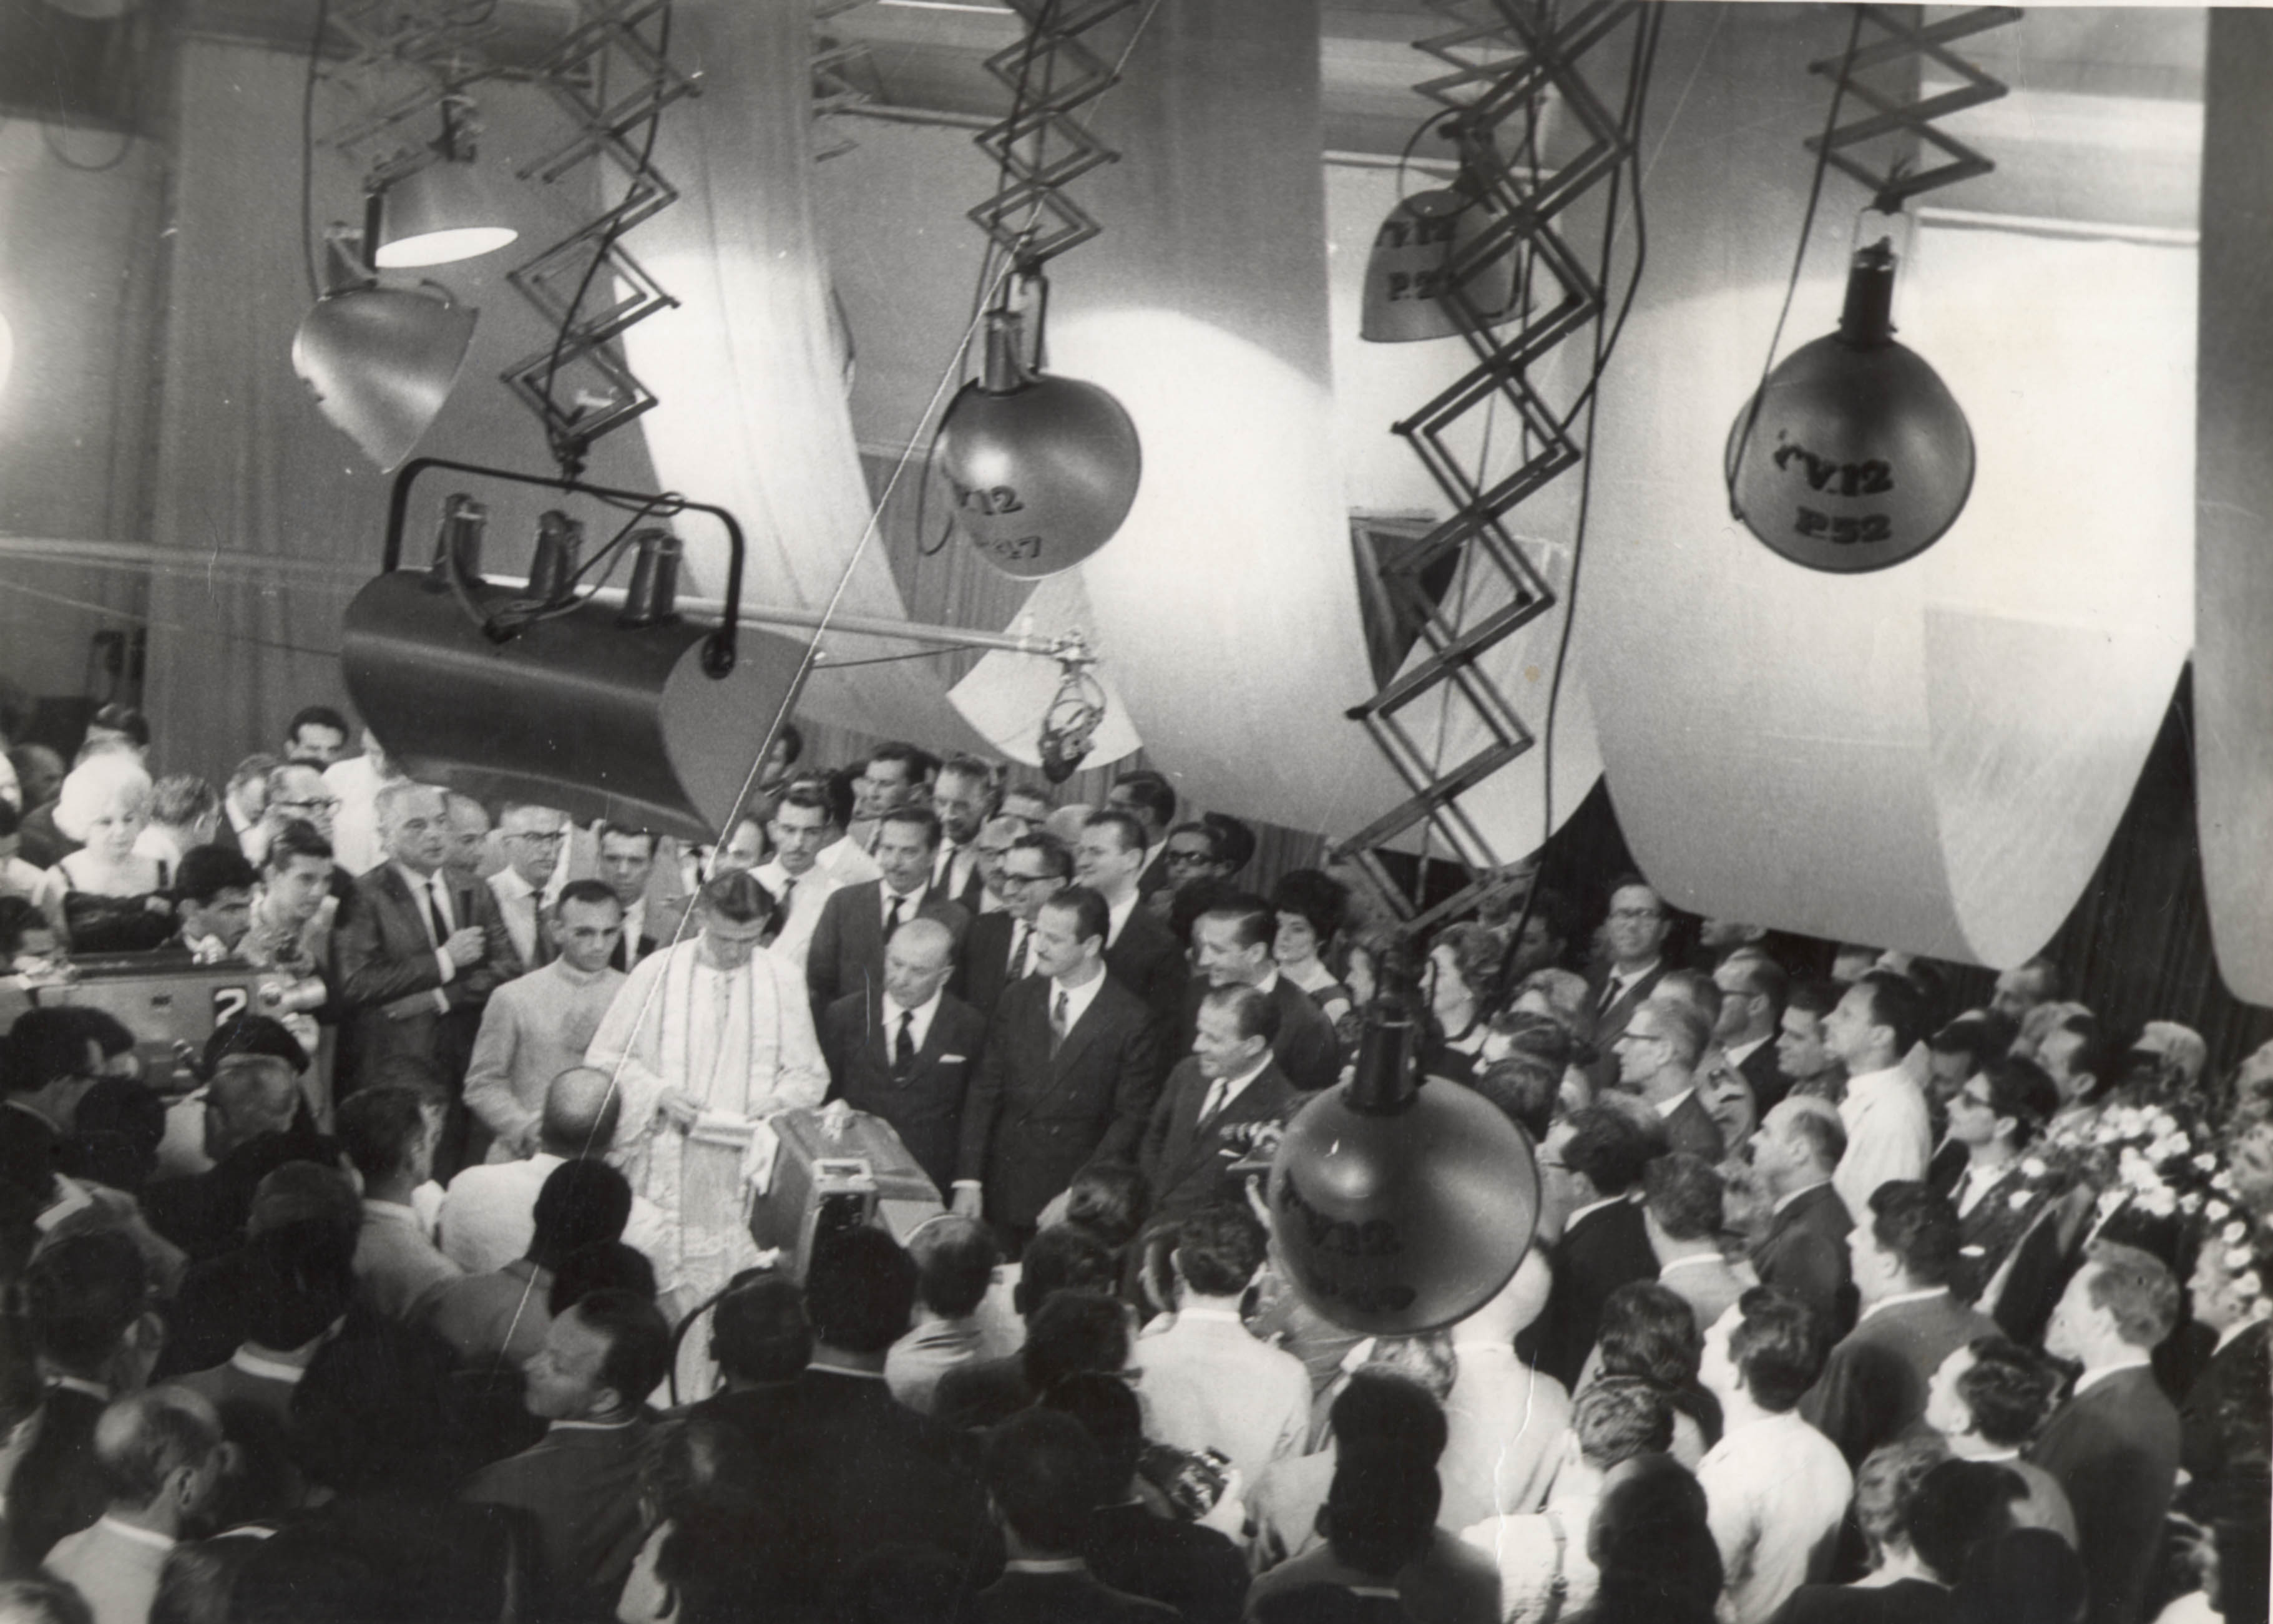 1962 - TV Gaúcha is inaugurated.